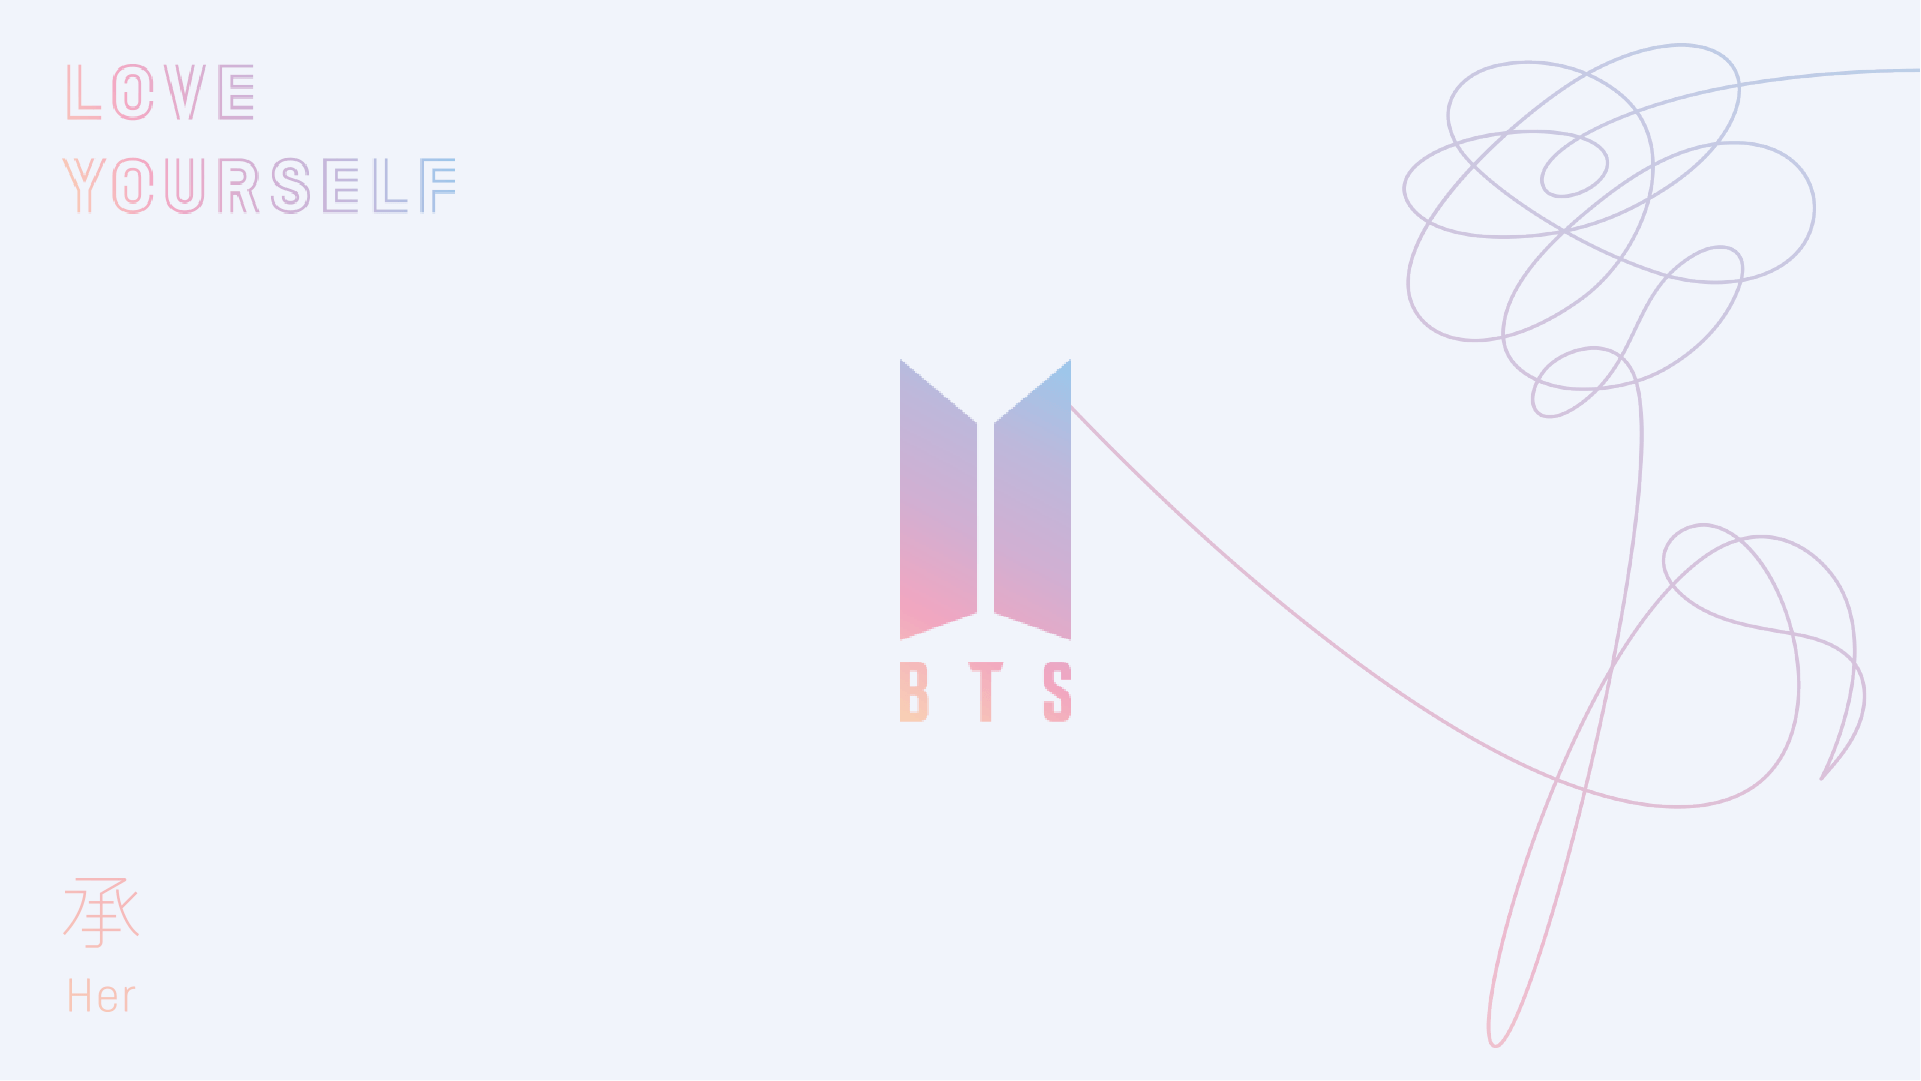 Love Yourself Wallpapers : BTS Logo Wallpapers - Wallpaper cave